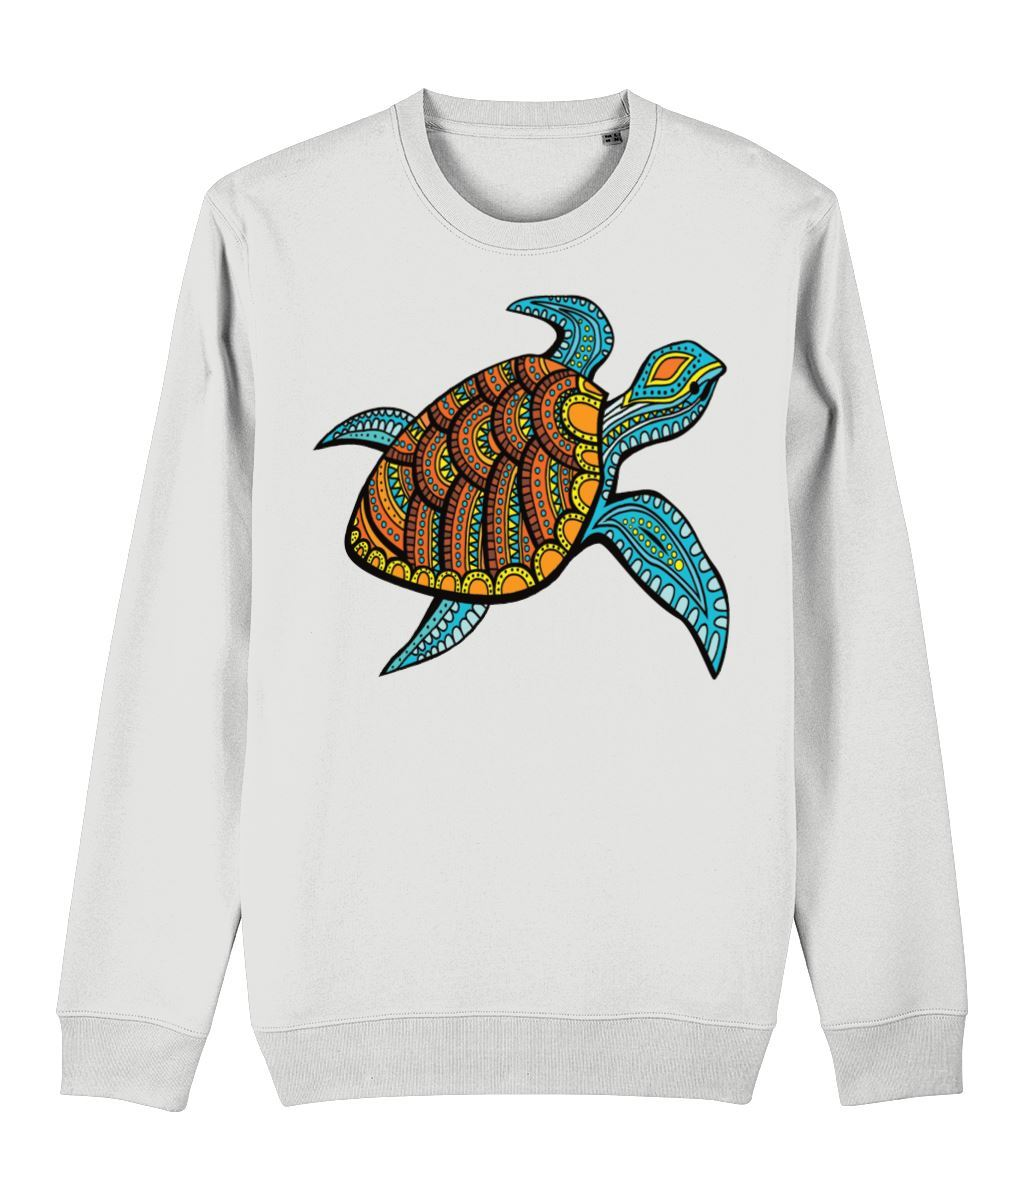 Turtle Sweatshirt Clothing IndianBelieves White X-Small